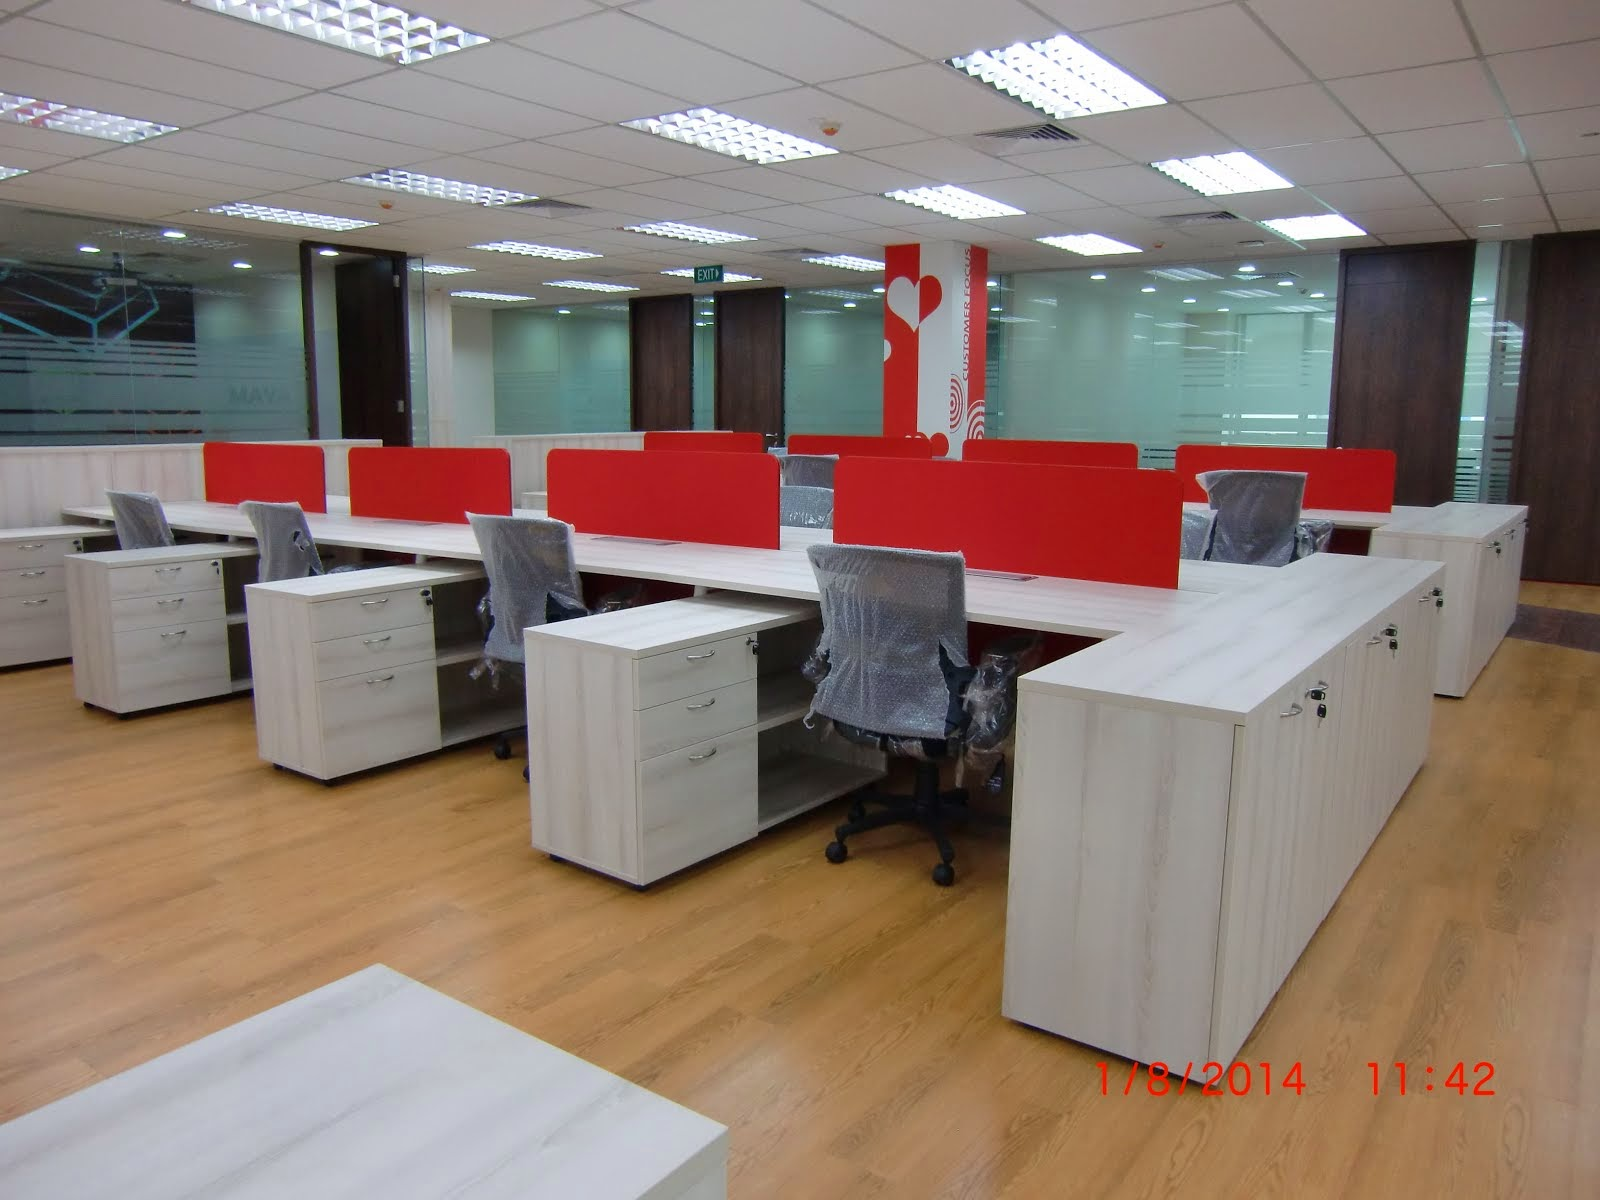 Working In A Modern Office - At Singapore Interior, We Build Better Offices